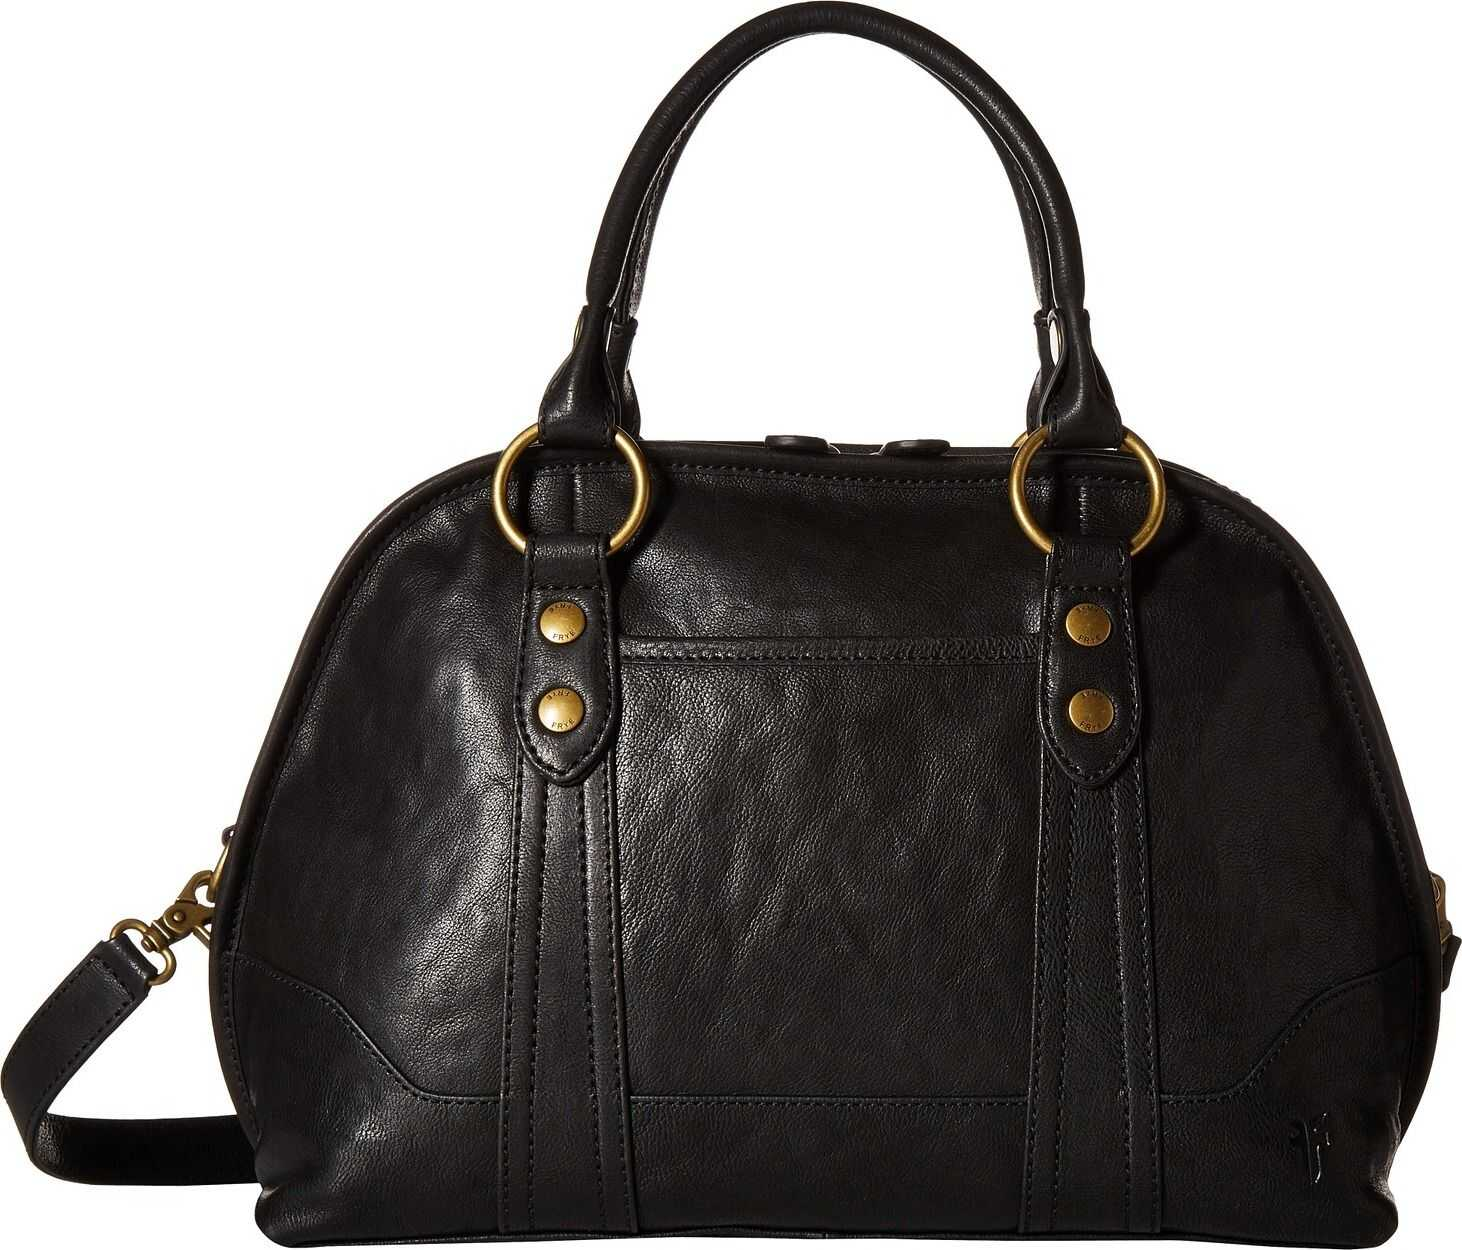 Frye Lucy Domed Satchel Black/Black Polished Full Grain